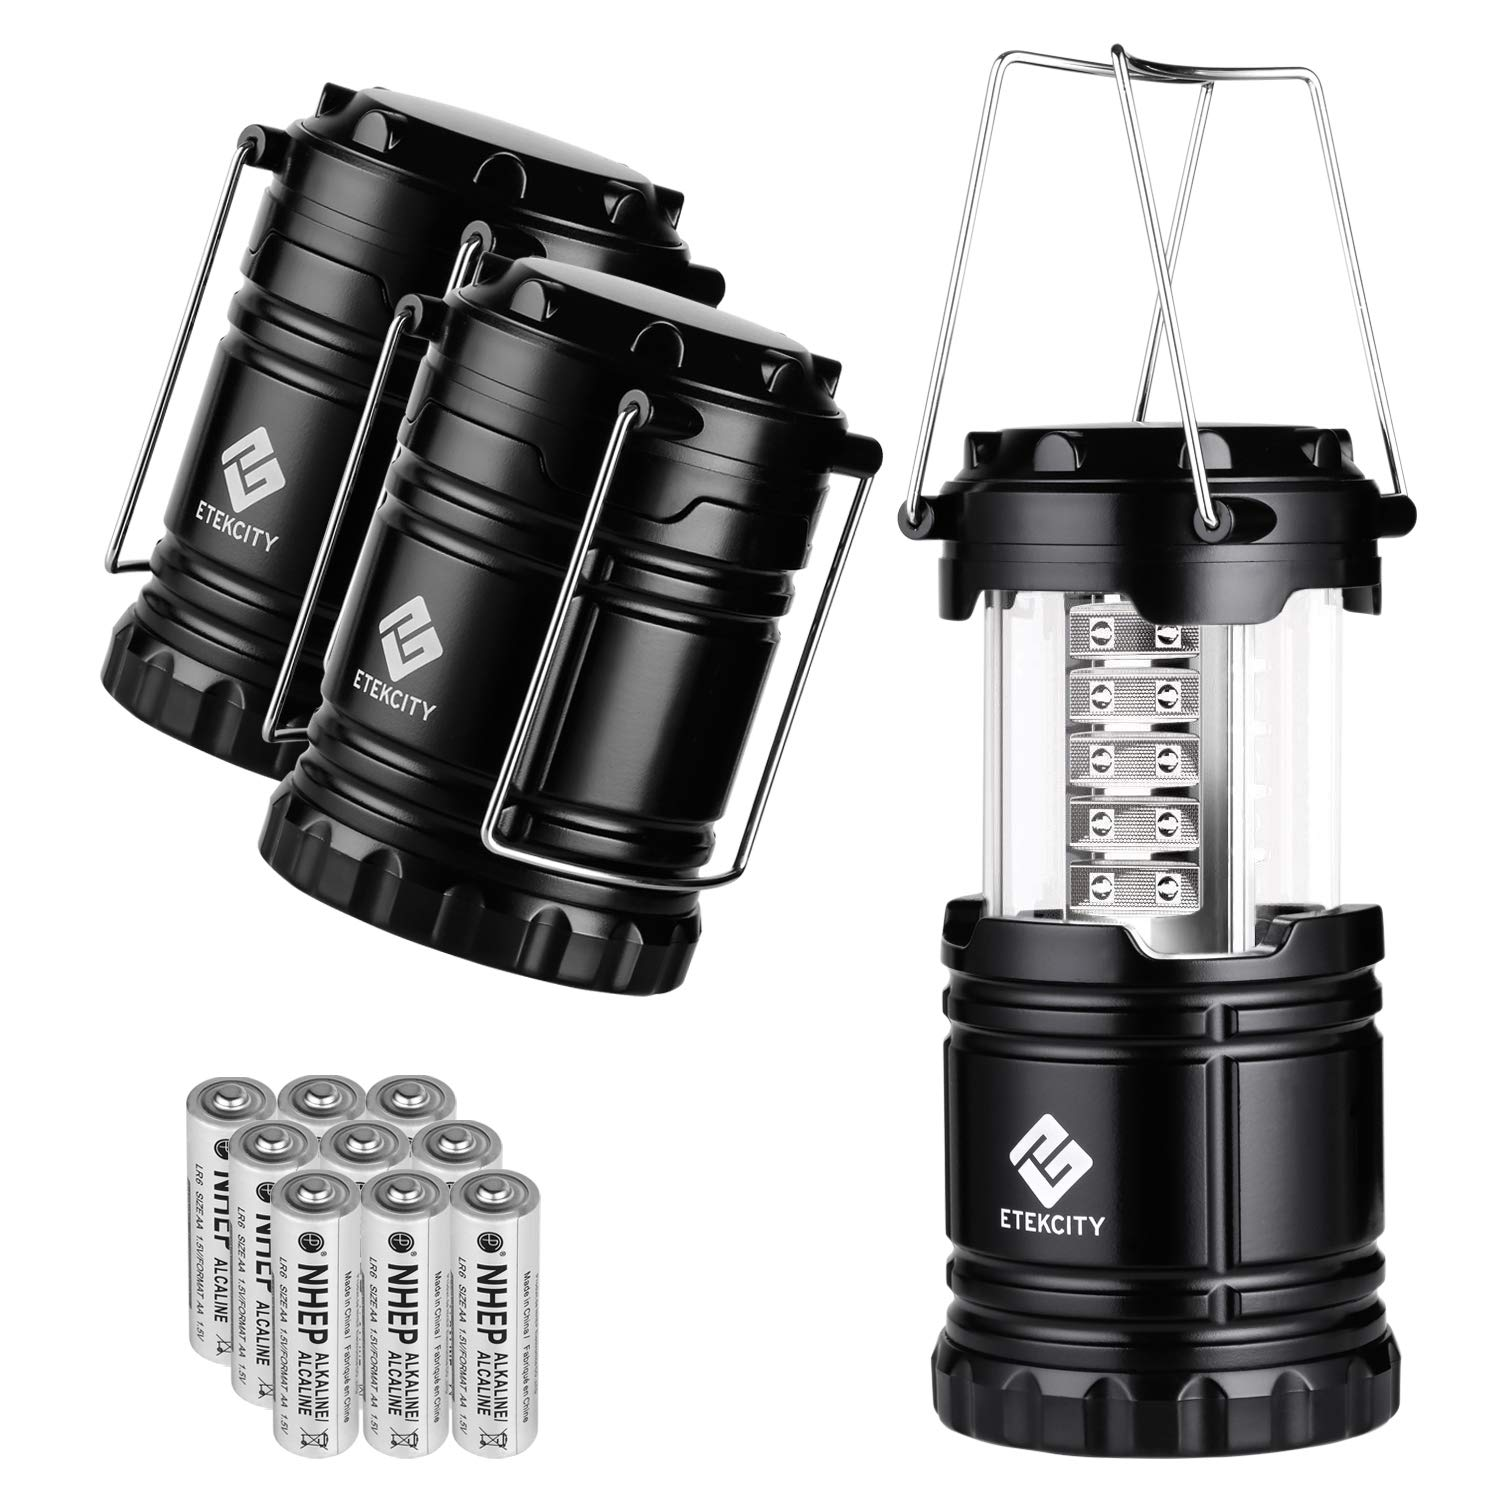 Etekcity LED Camping Lantern Portable Flashlight with AA Batteries - Survival Kit for Emergency, Hurricane, Power Outage, CL10 (Black, Collapsible) (3 Pack) by Etekcity